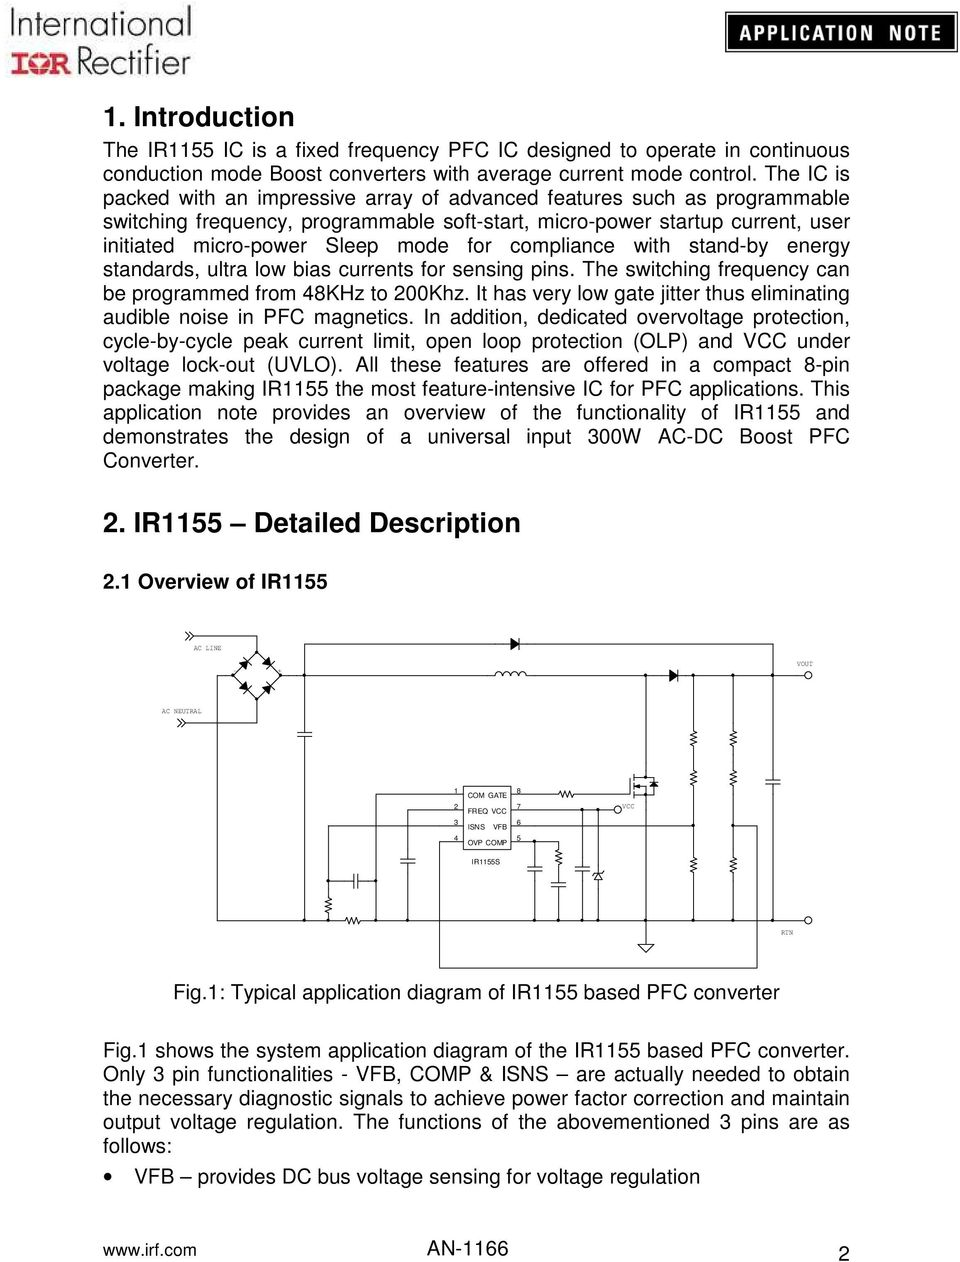 Application Note An Pdf Circuit Diagram Of A Typical Power Factor Correction Boost Converter For Compliance With Stand By Energy Standards Ultra Low Bias Currents Sensing Pins